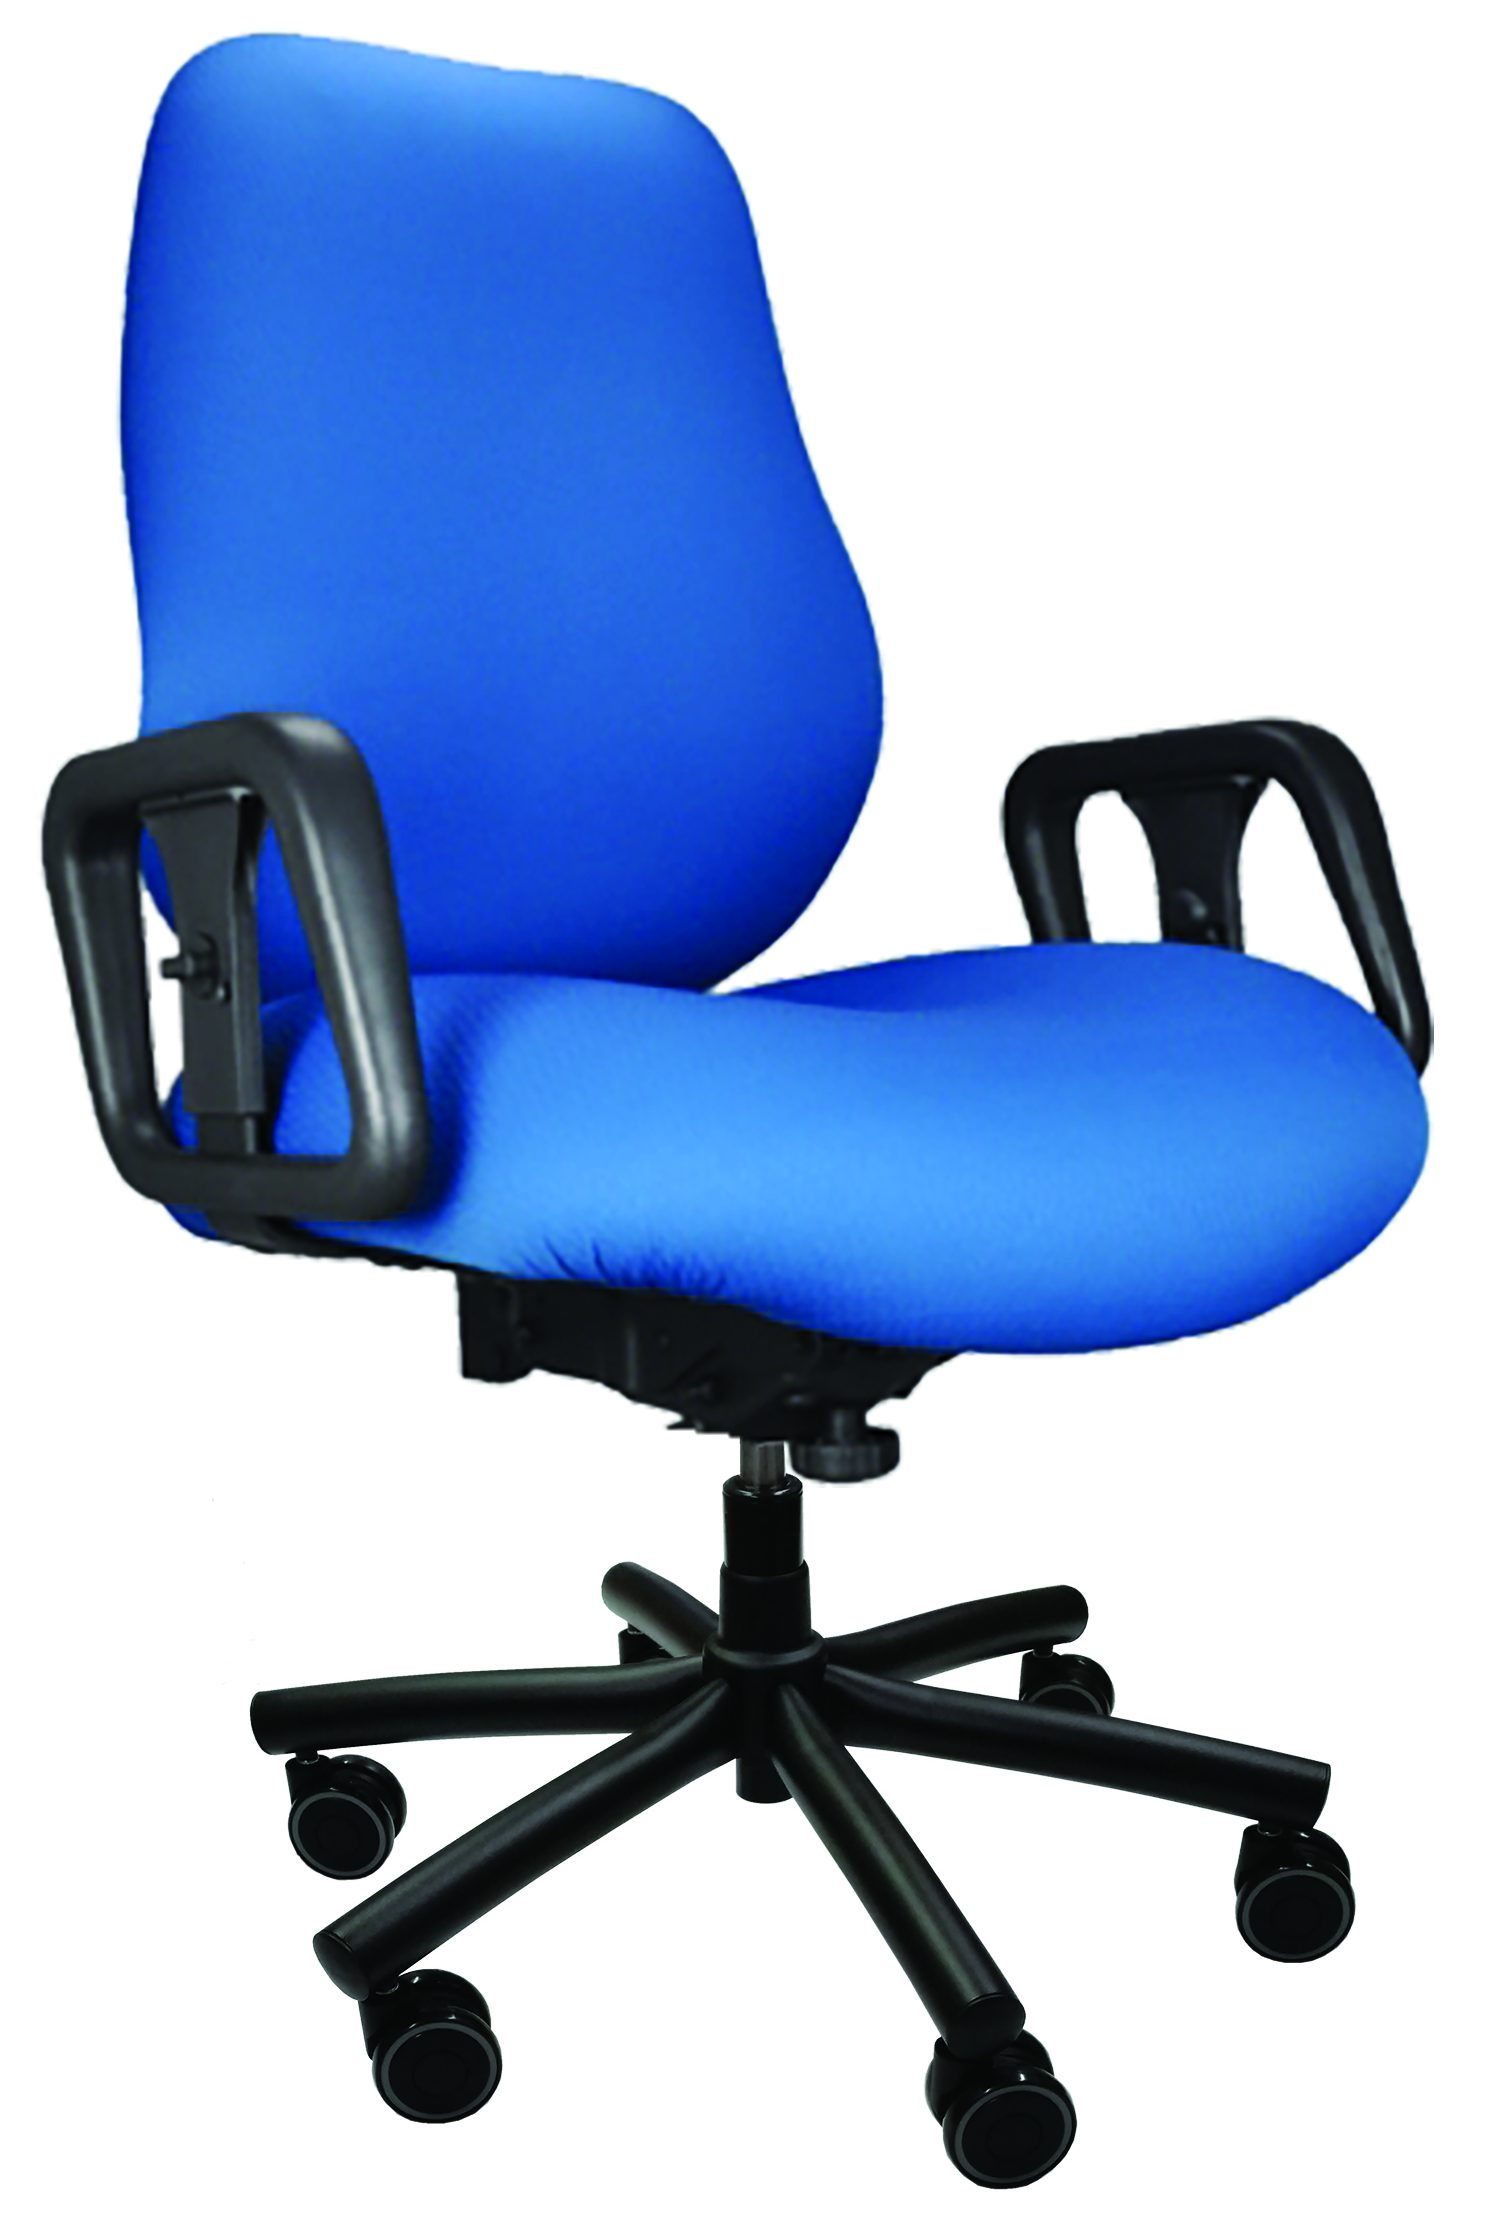 Blue Big & Tall Chair with arms, wheels, and 6-prong base